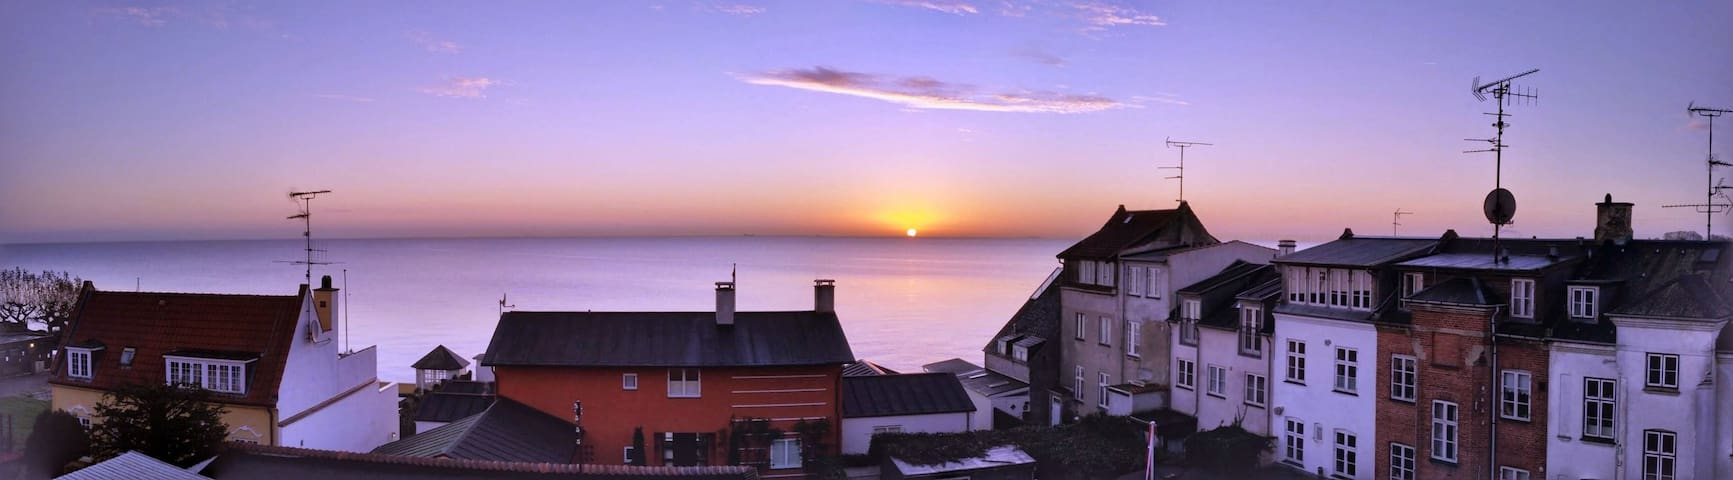 2 floor w/breathtaking sea views - Klampenborg - Lejlighed